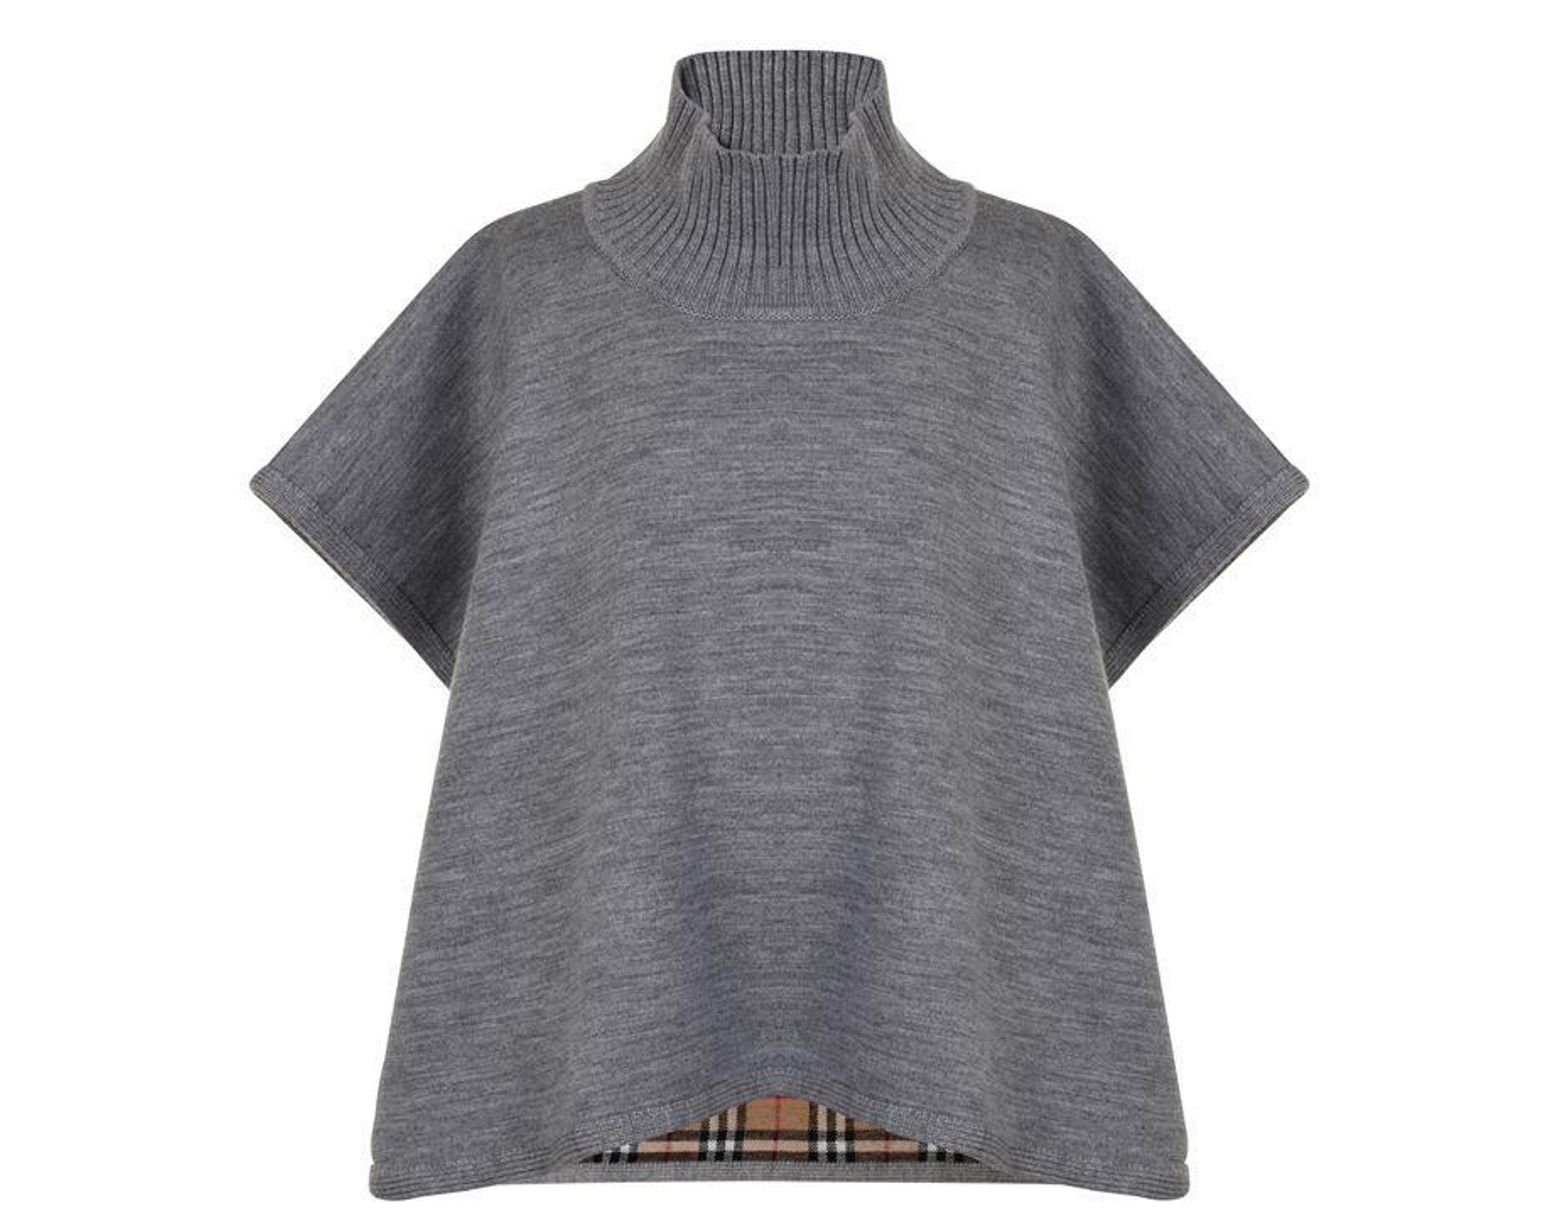 826c05a8d Burberry Children Girls Reversible Vintage Check Merino Poncho in Gray -  Lyst